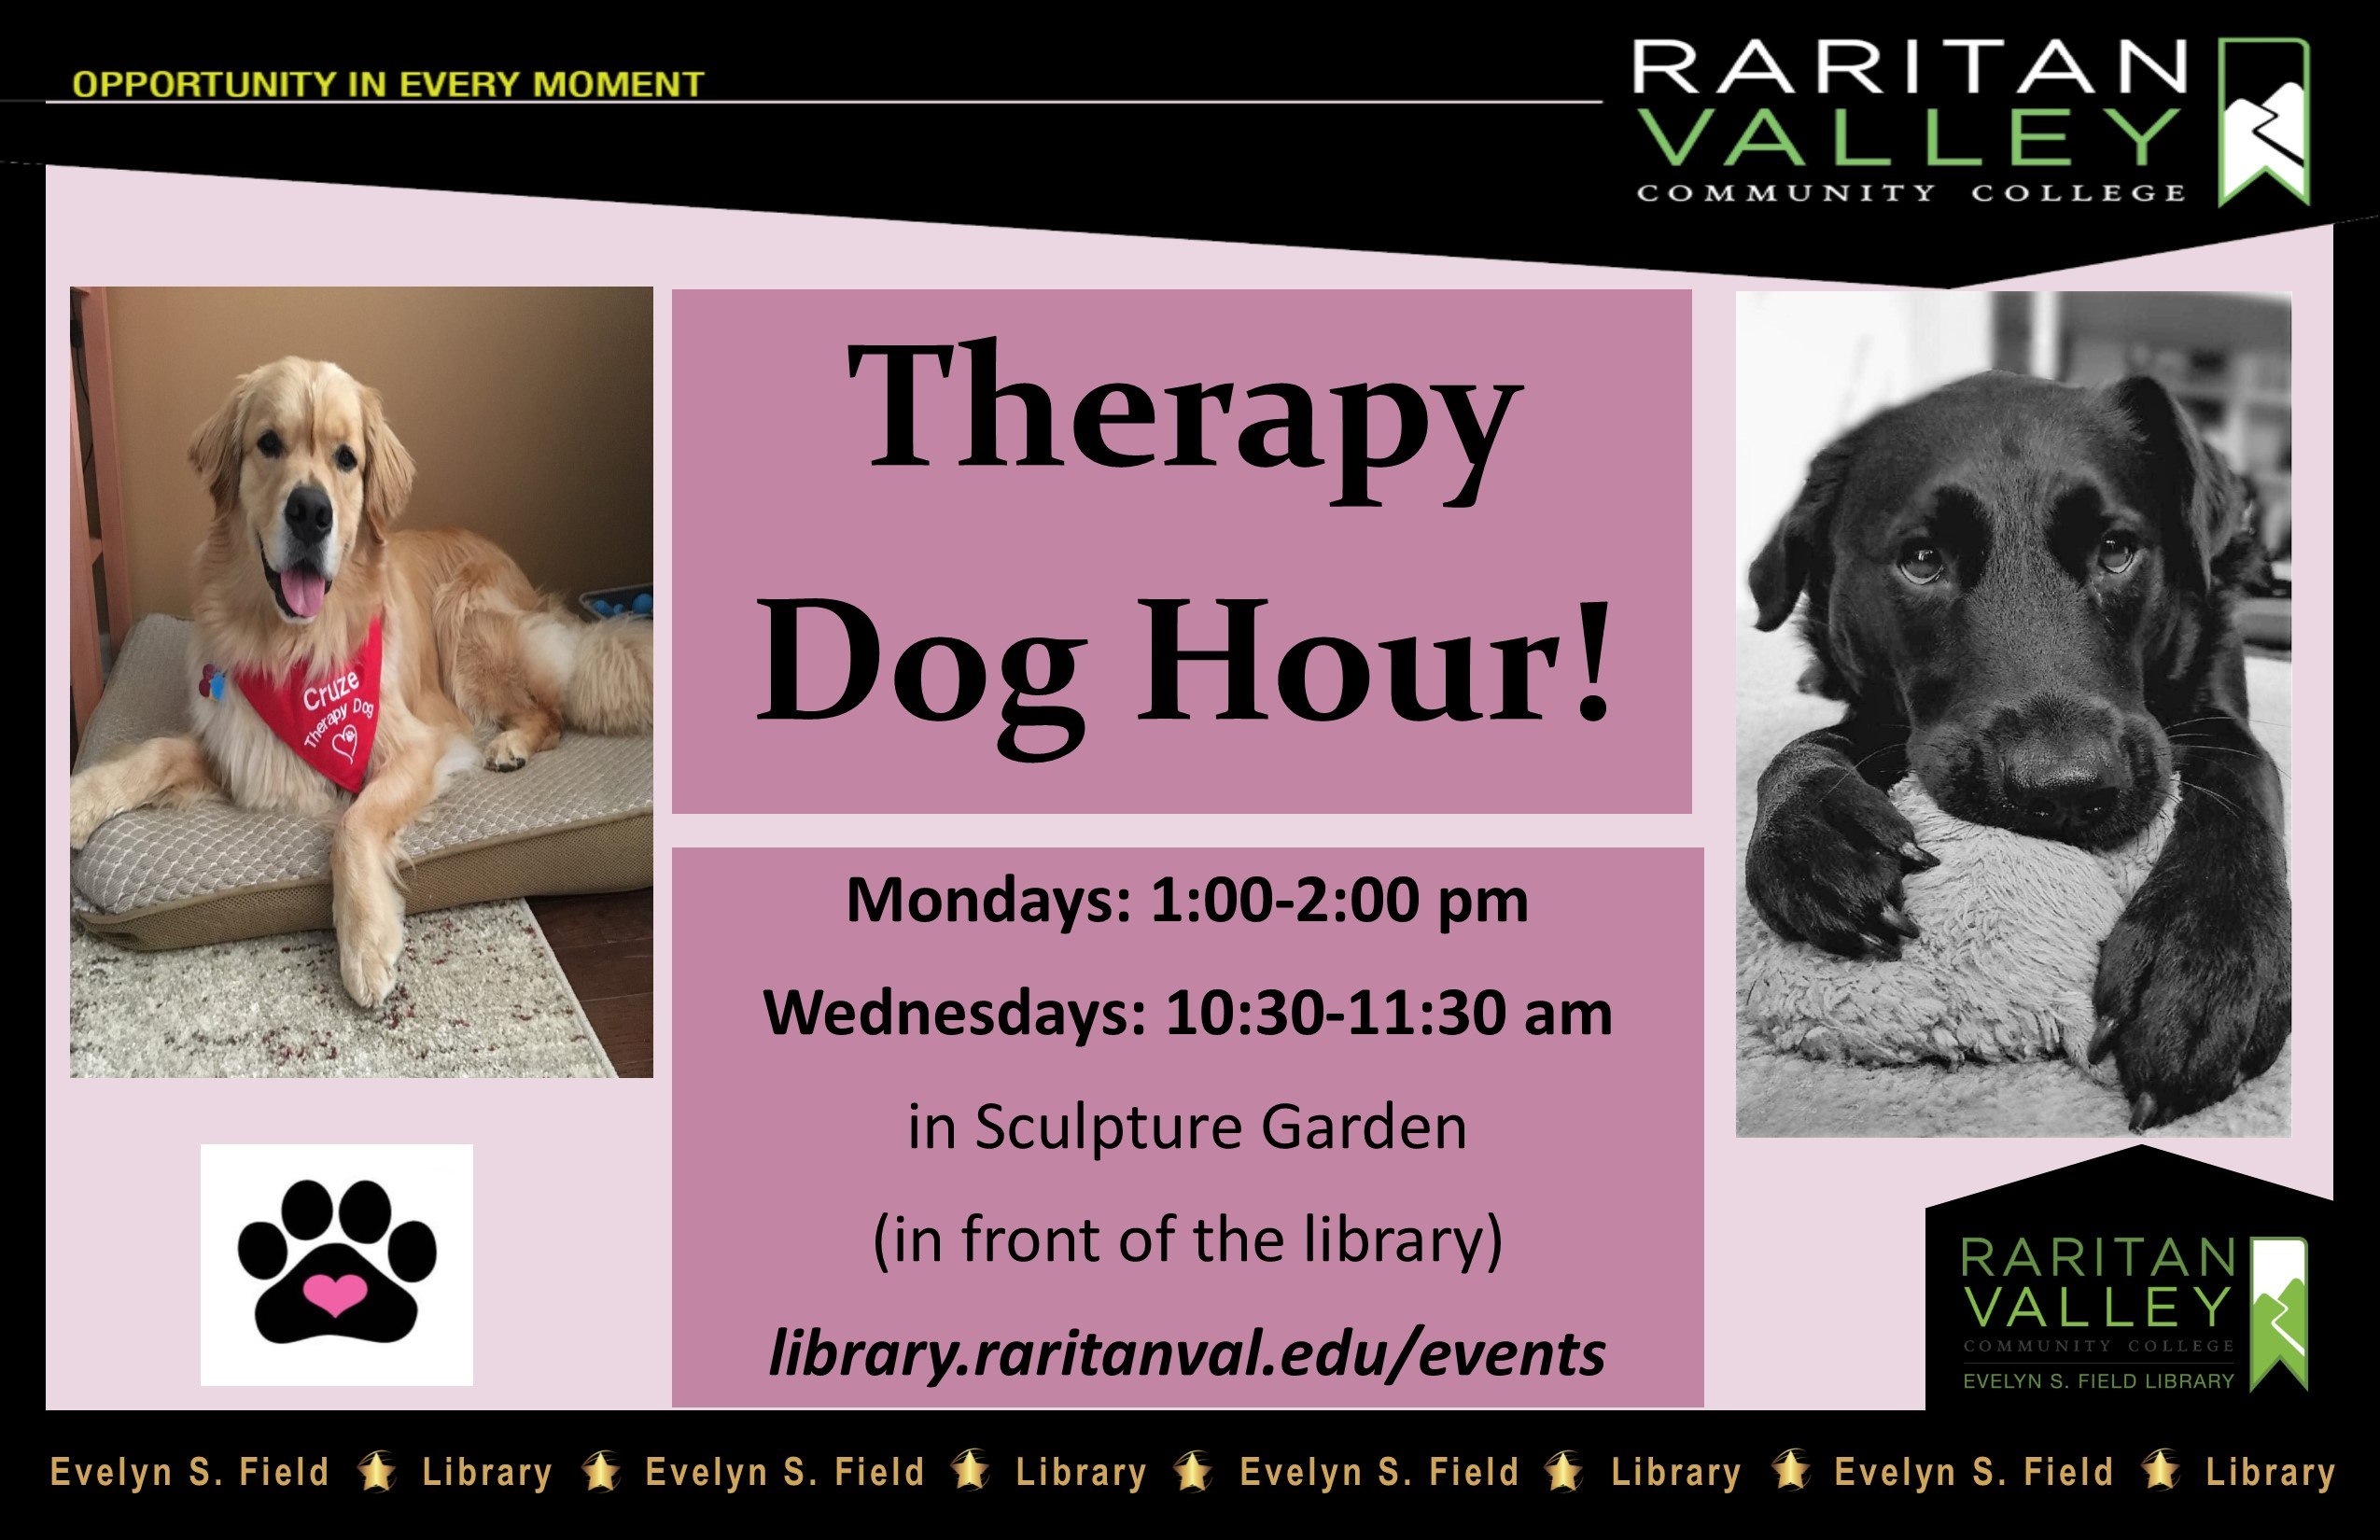 therapy dog hour